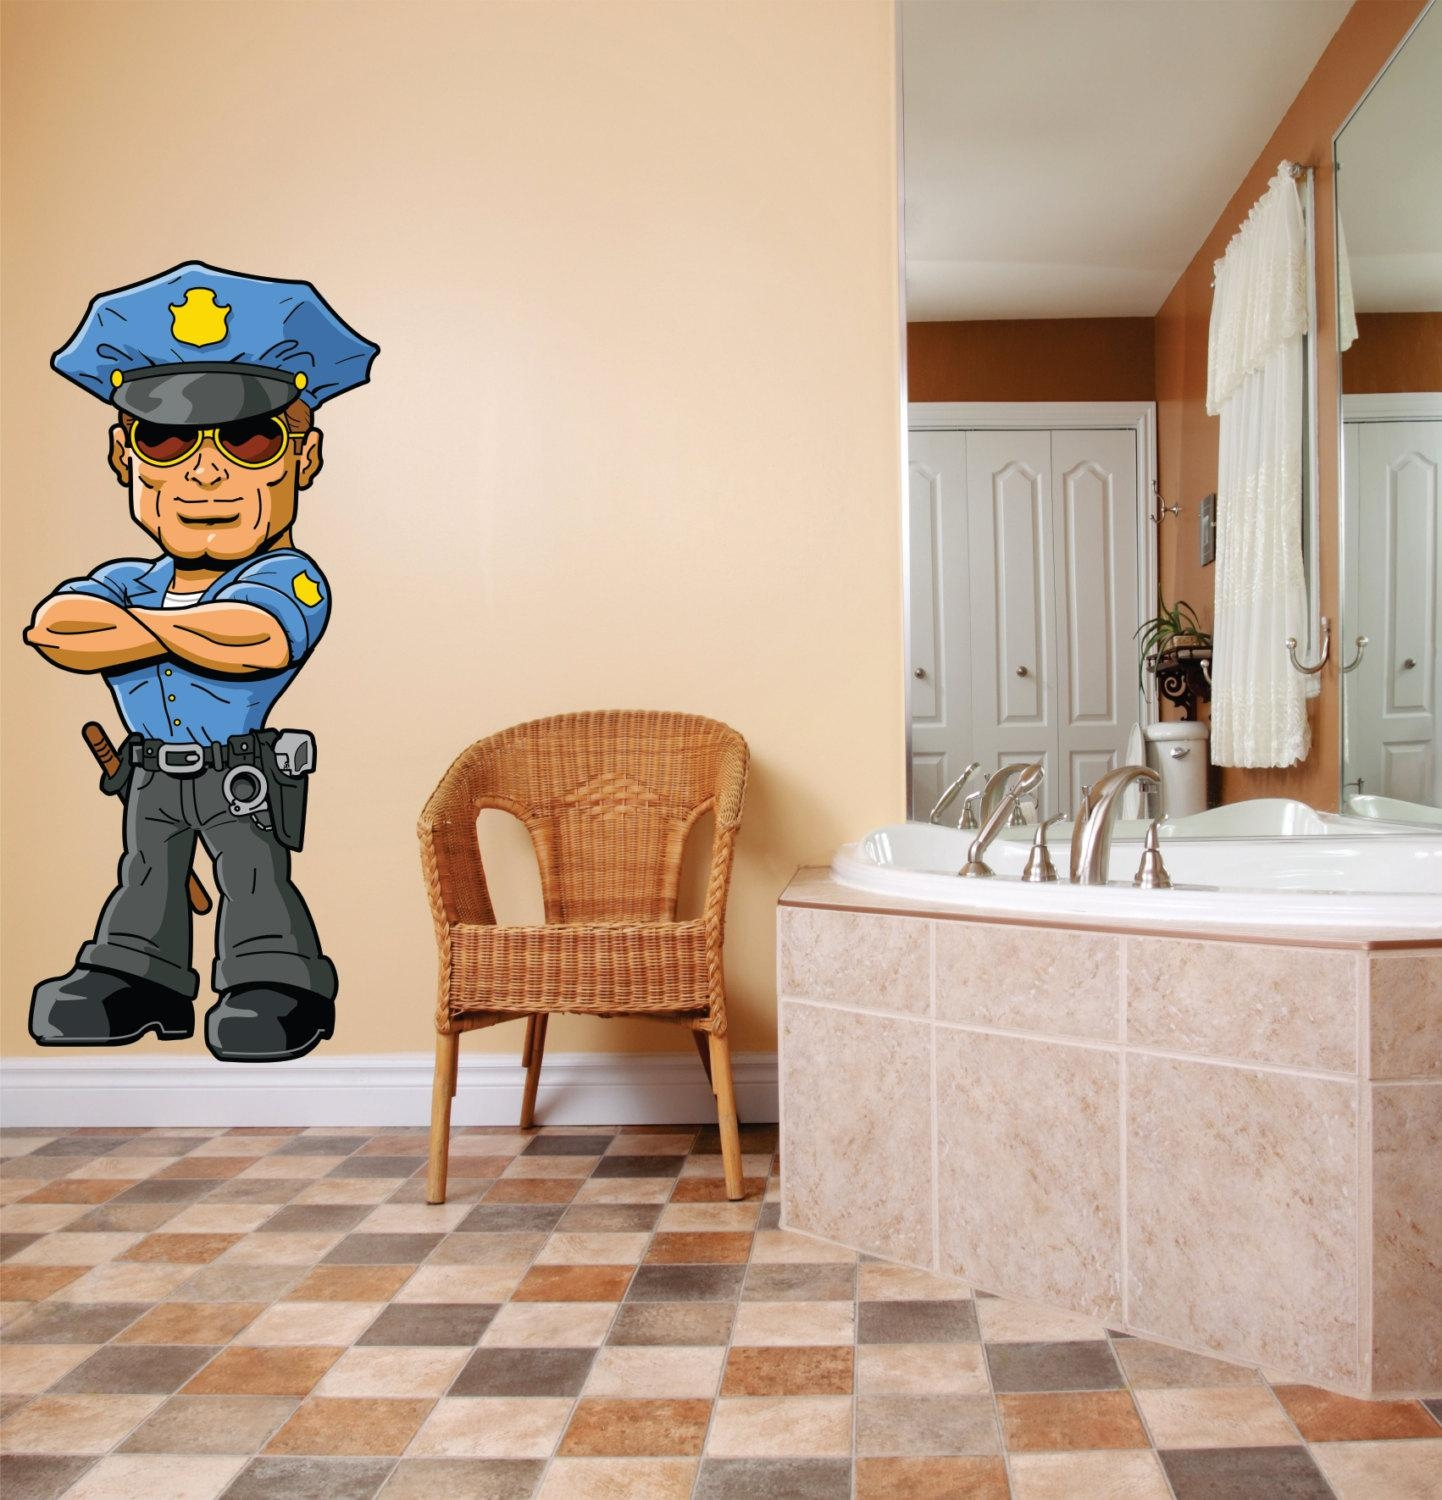 Preschool Classroom Cartoon Character Cop Police Officer Nypd Regarding Preschool Classroom Wall Decals (Image 16 of 20)